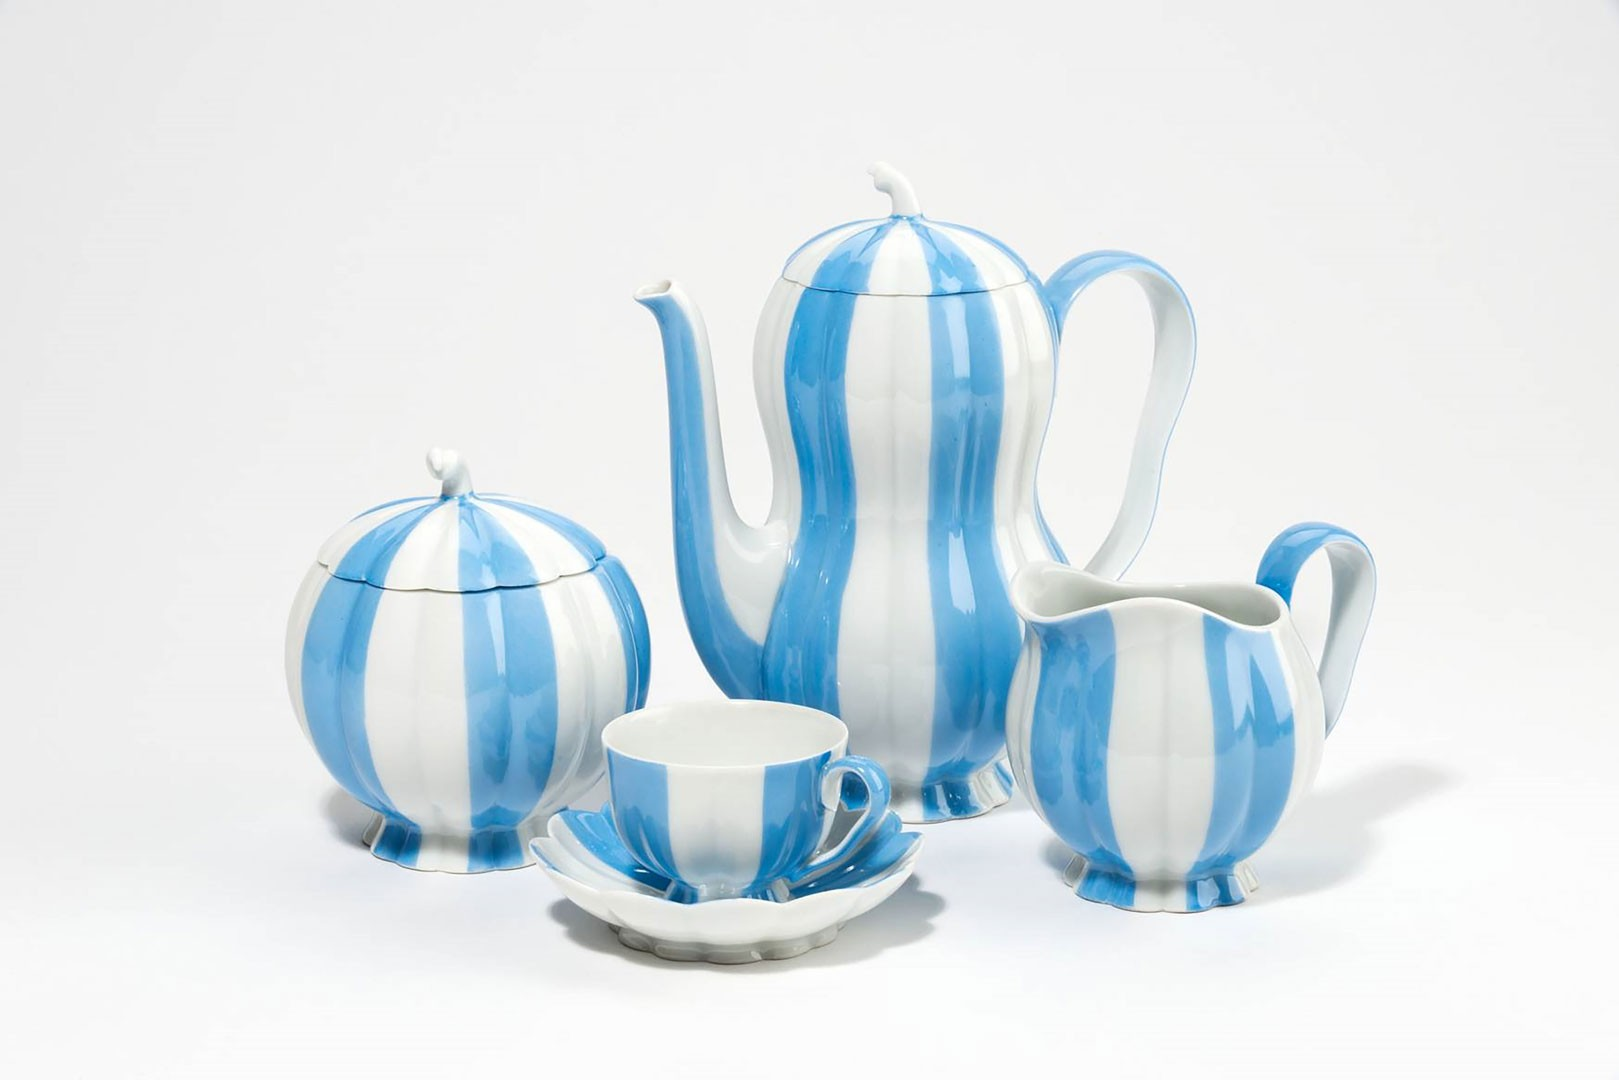 "<BODY><div>Josef Hoffmann, Porcelain set ""Melon"" [Melon] for the Augarten Porcelain Manufactory, 1931</div><div>© MAK/Katrin Wißkirchen</div><div> </div></BODY>"